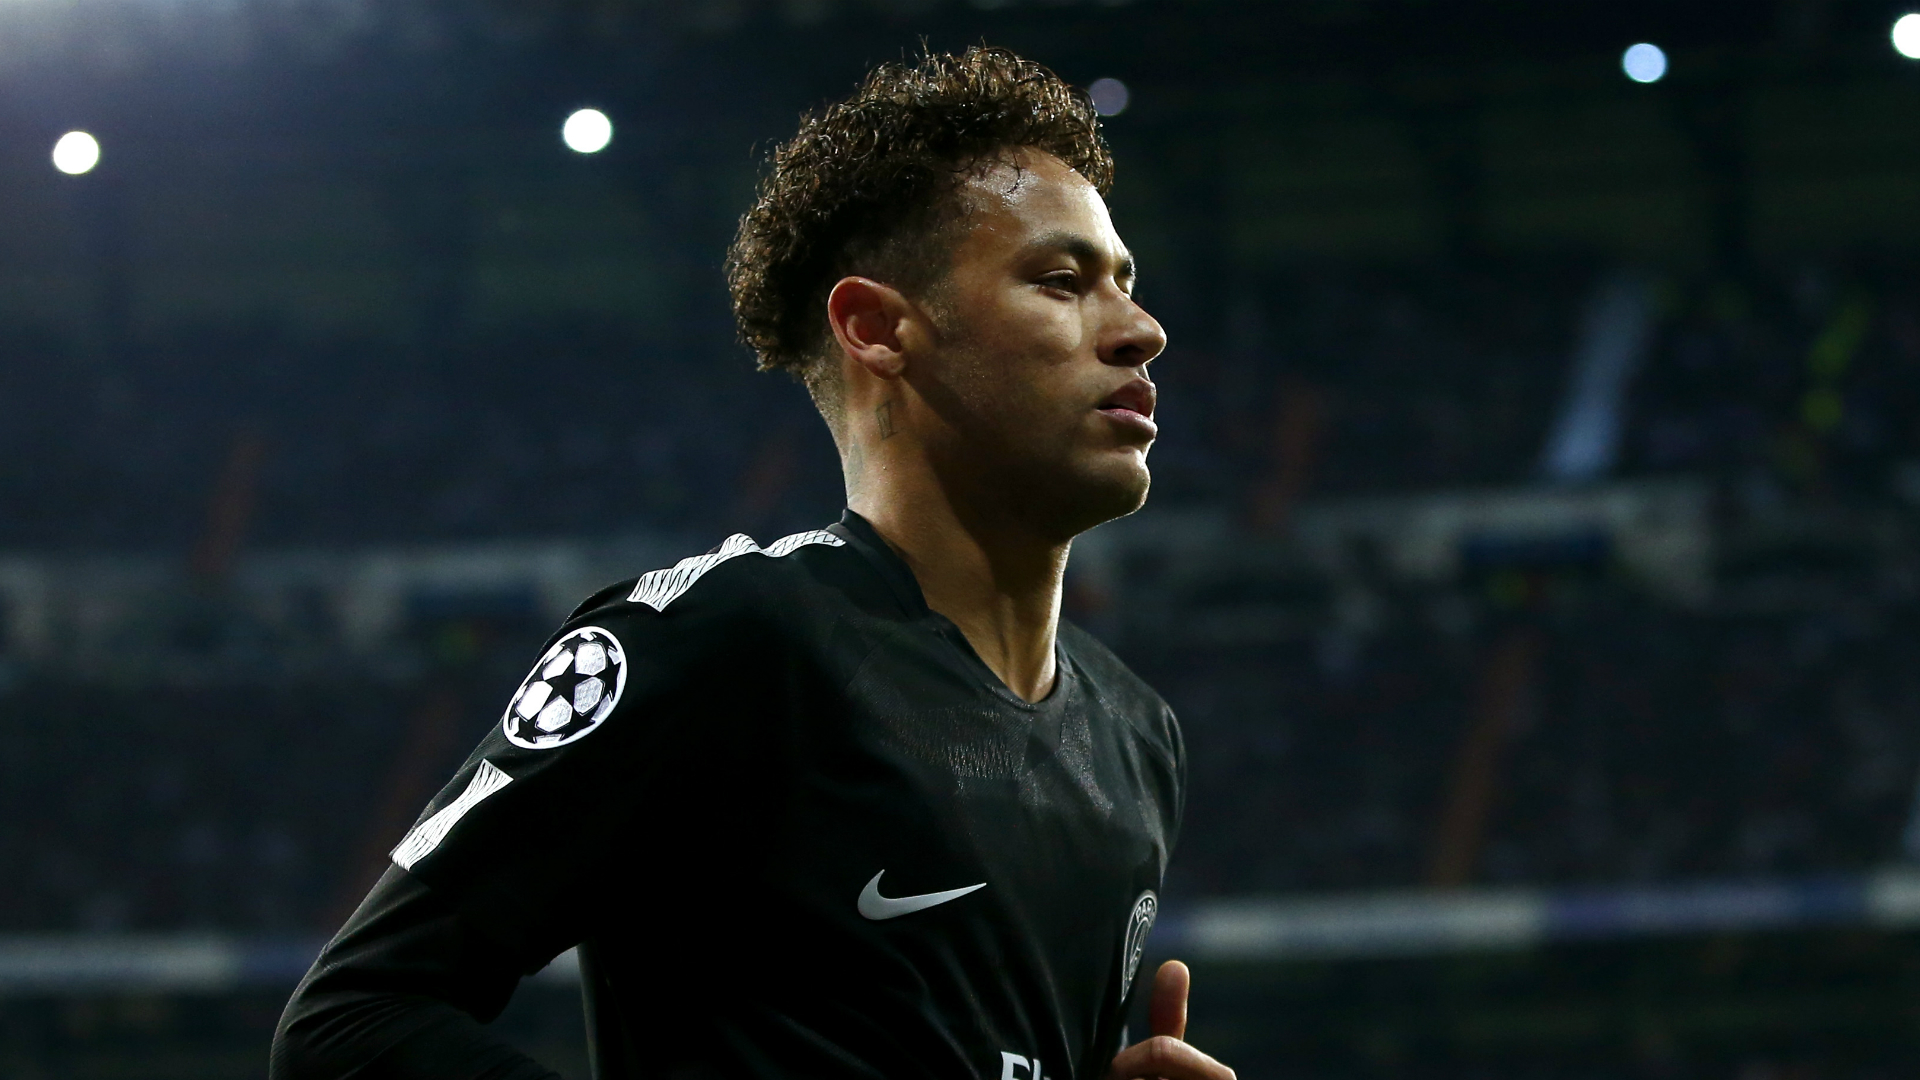 Neymar Under UEFA Investigation For VAR Rant